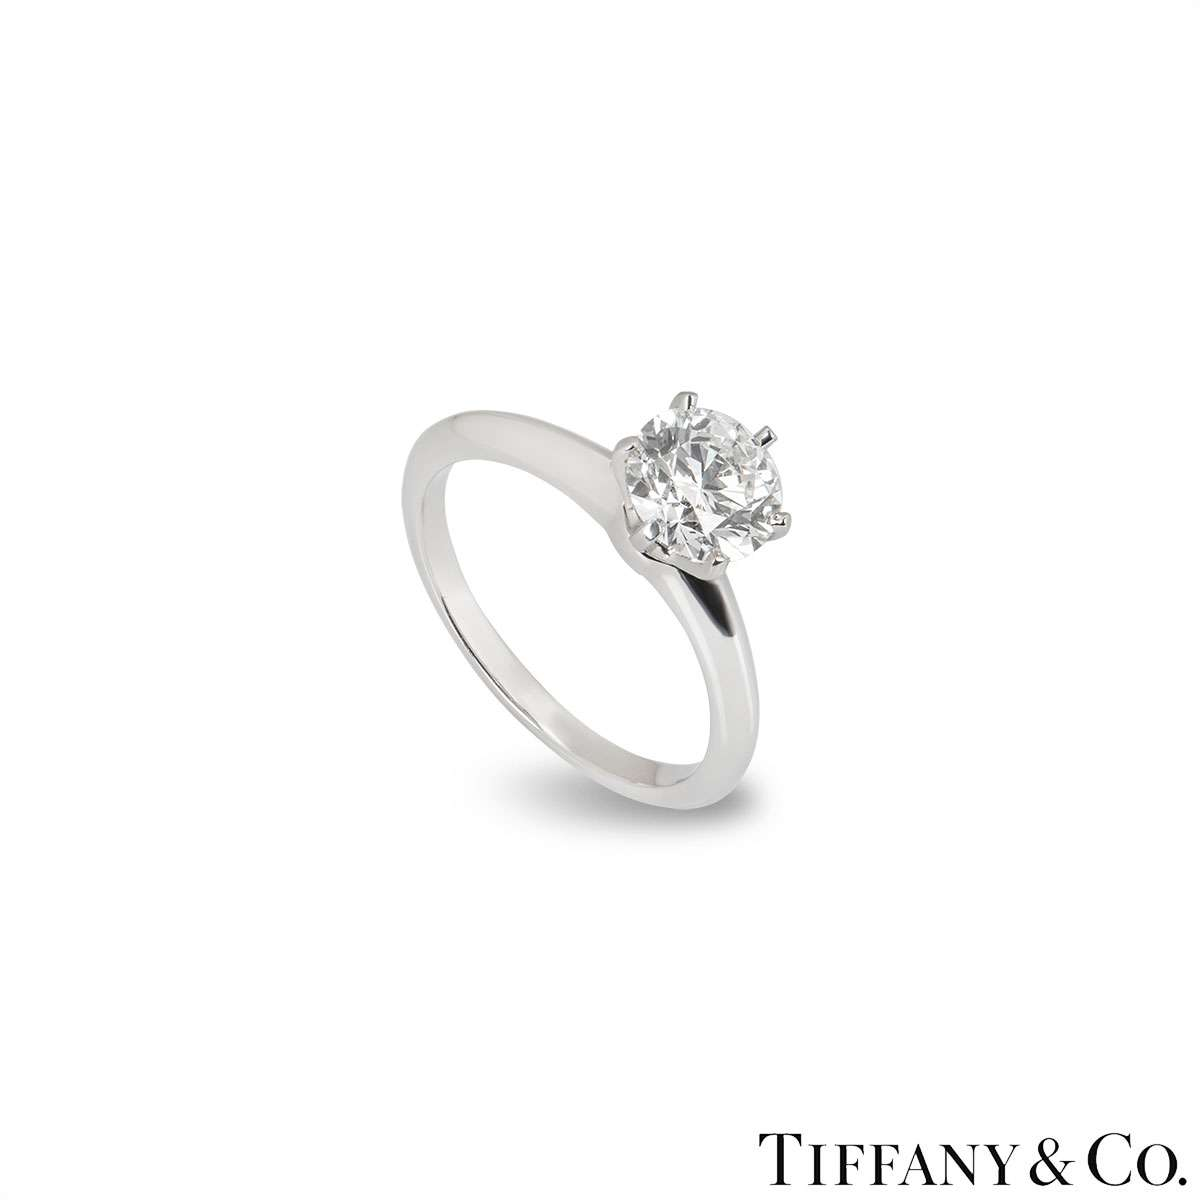 Tiffany & Co. Round Brilliant Cut Diamond Ring 1.67ct H/VVS2